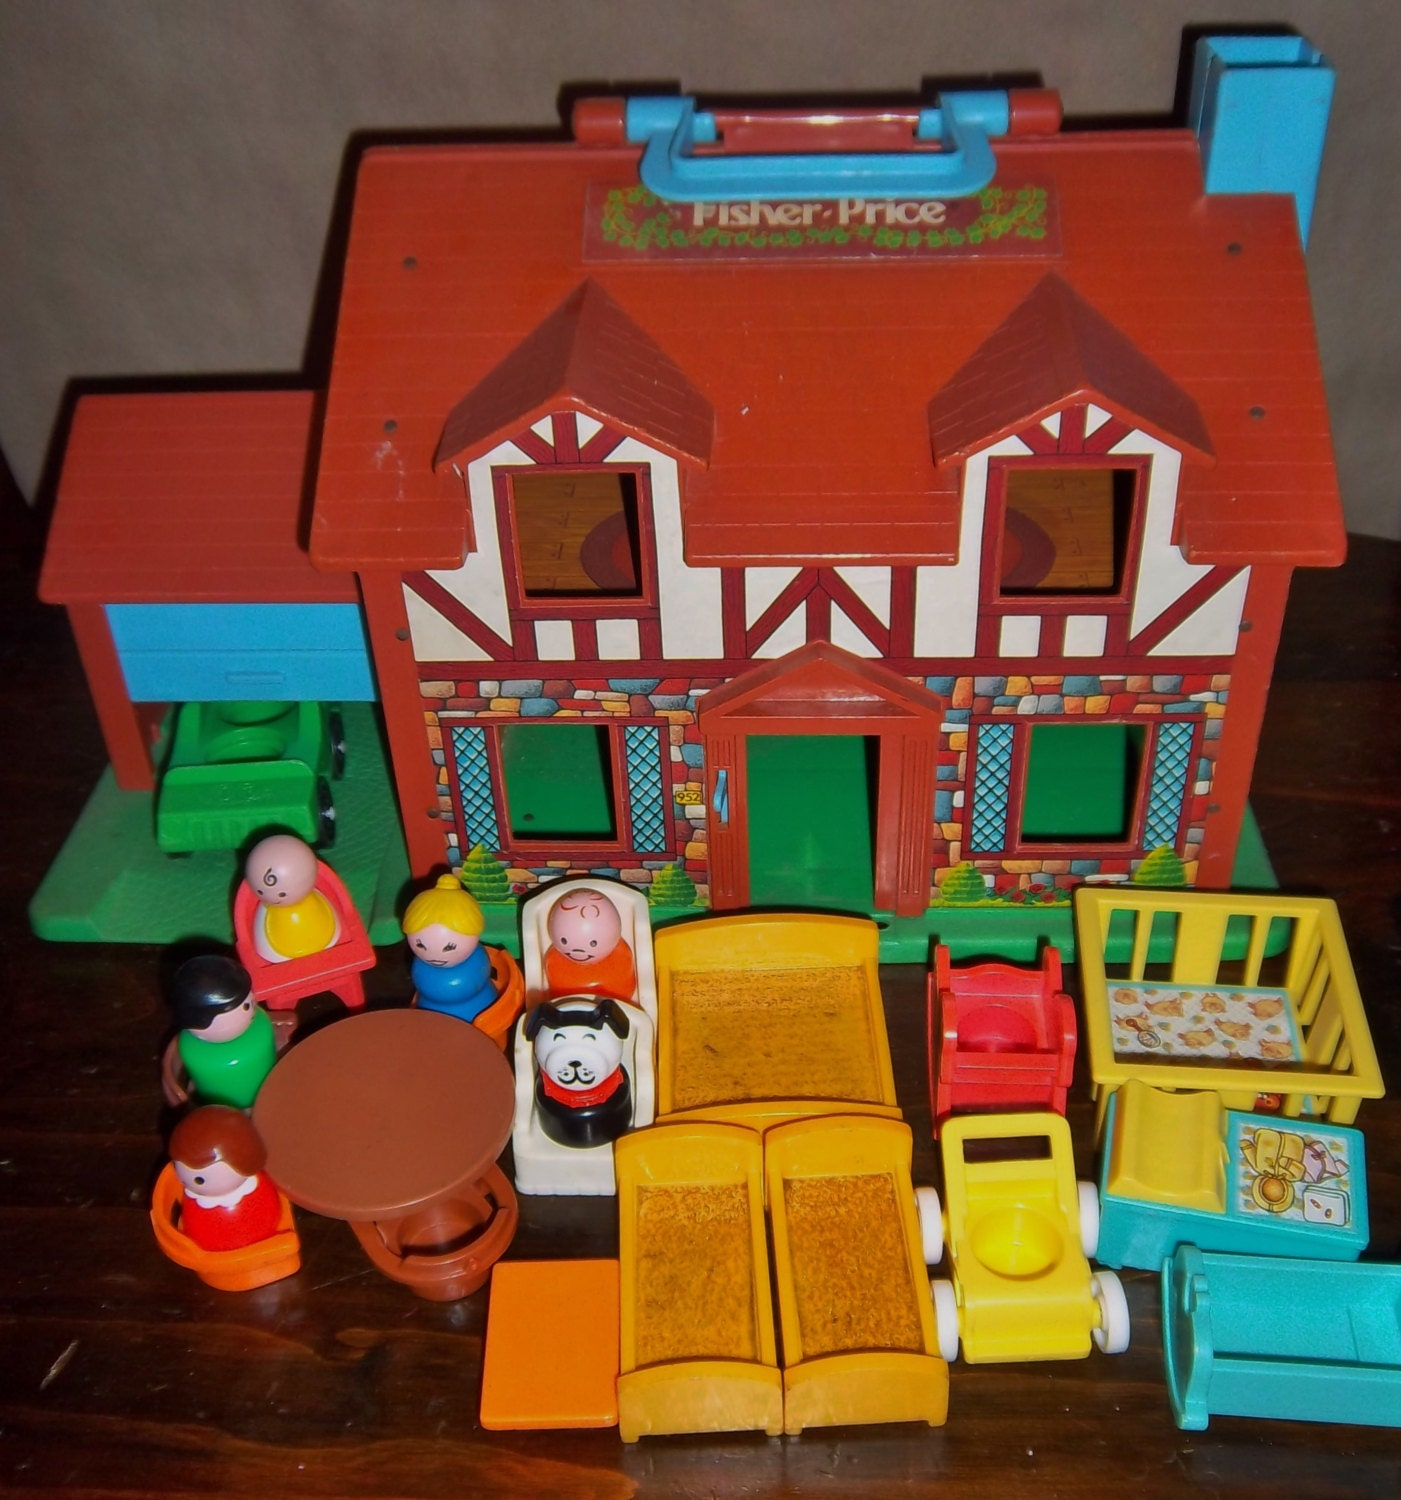 Fisher price doll house furniture - Vintage Fisher Price Little People Tudor House Complete With Nursery Room Furniture Play Family 952 Playset